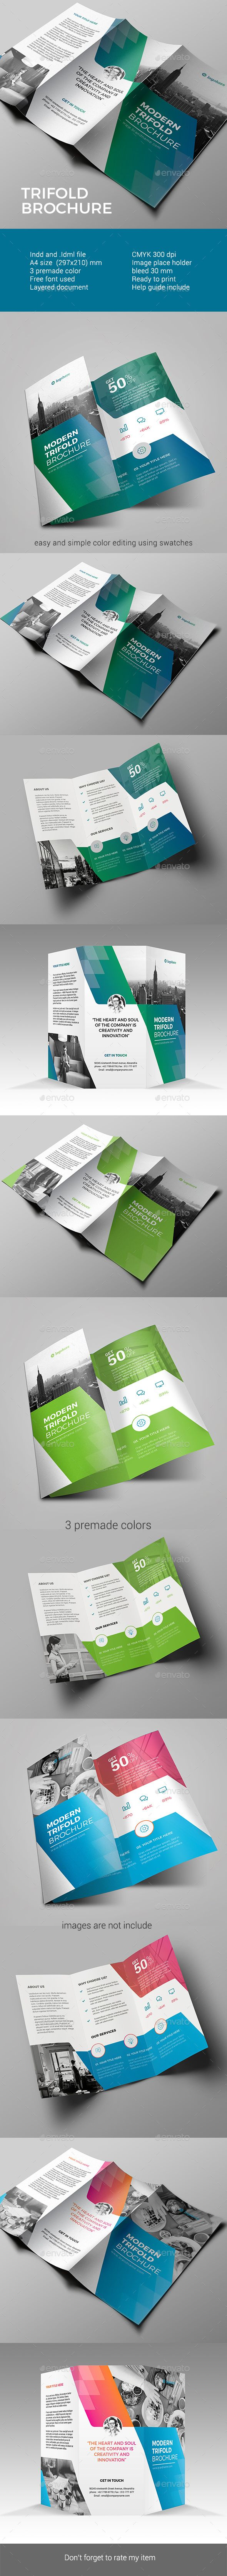 Corporate Trifold Brochure Template - #Corporate #Trifold #Brochure #Template #Design. Download here: https://graphicriver.net/item/trifold-brochure/19455096?ref=yinkira